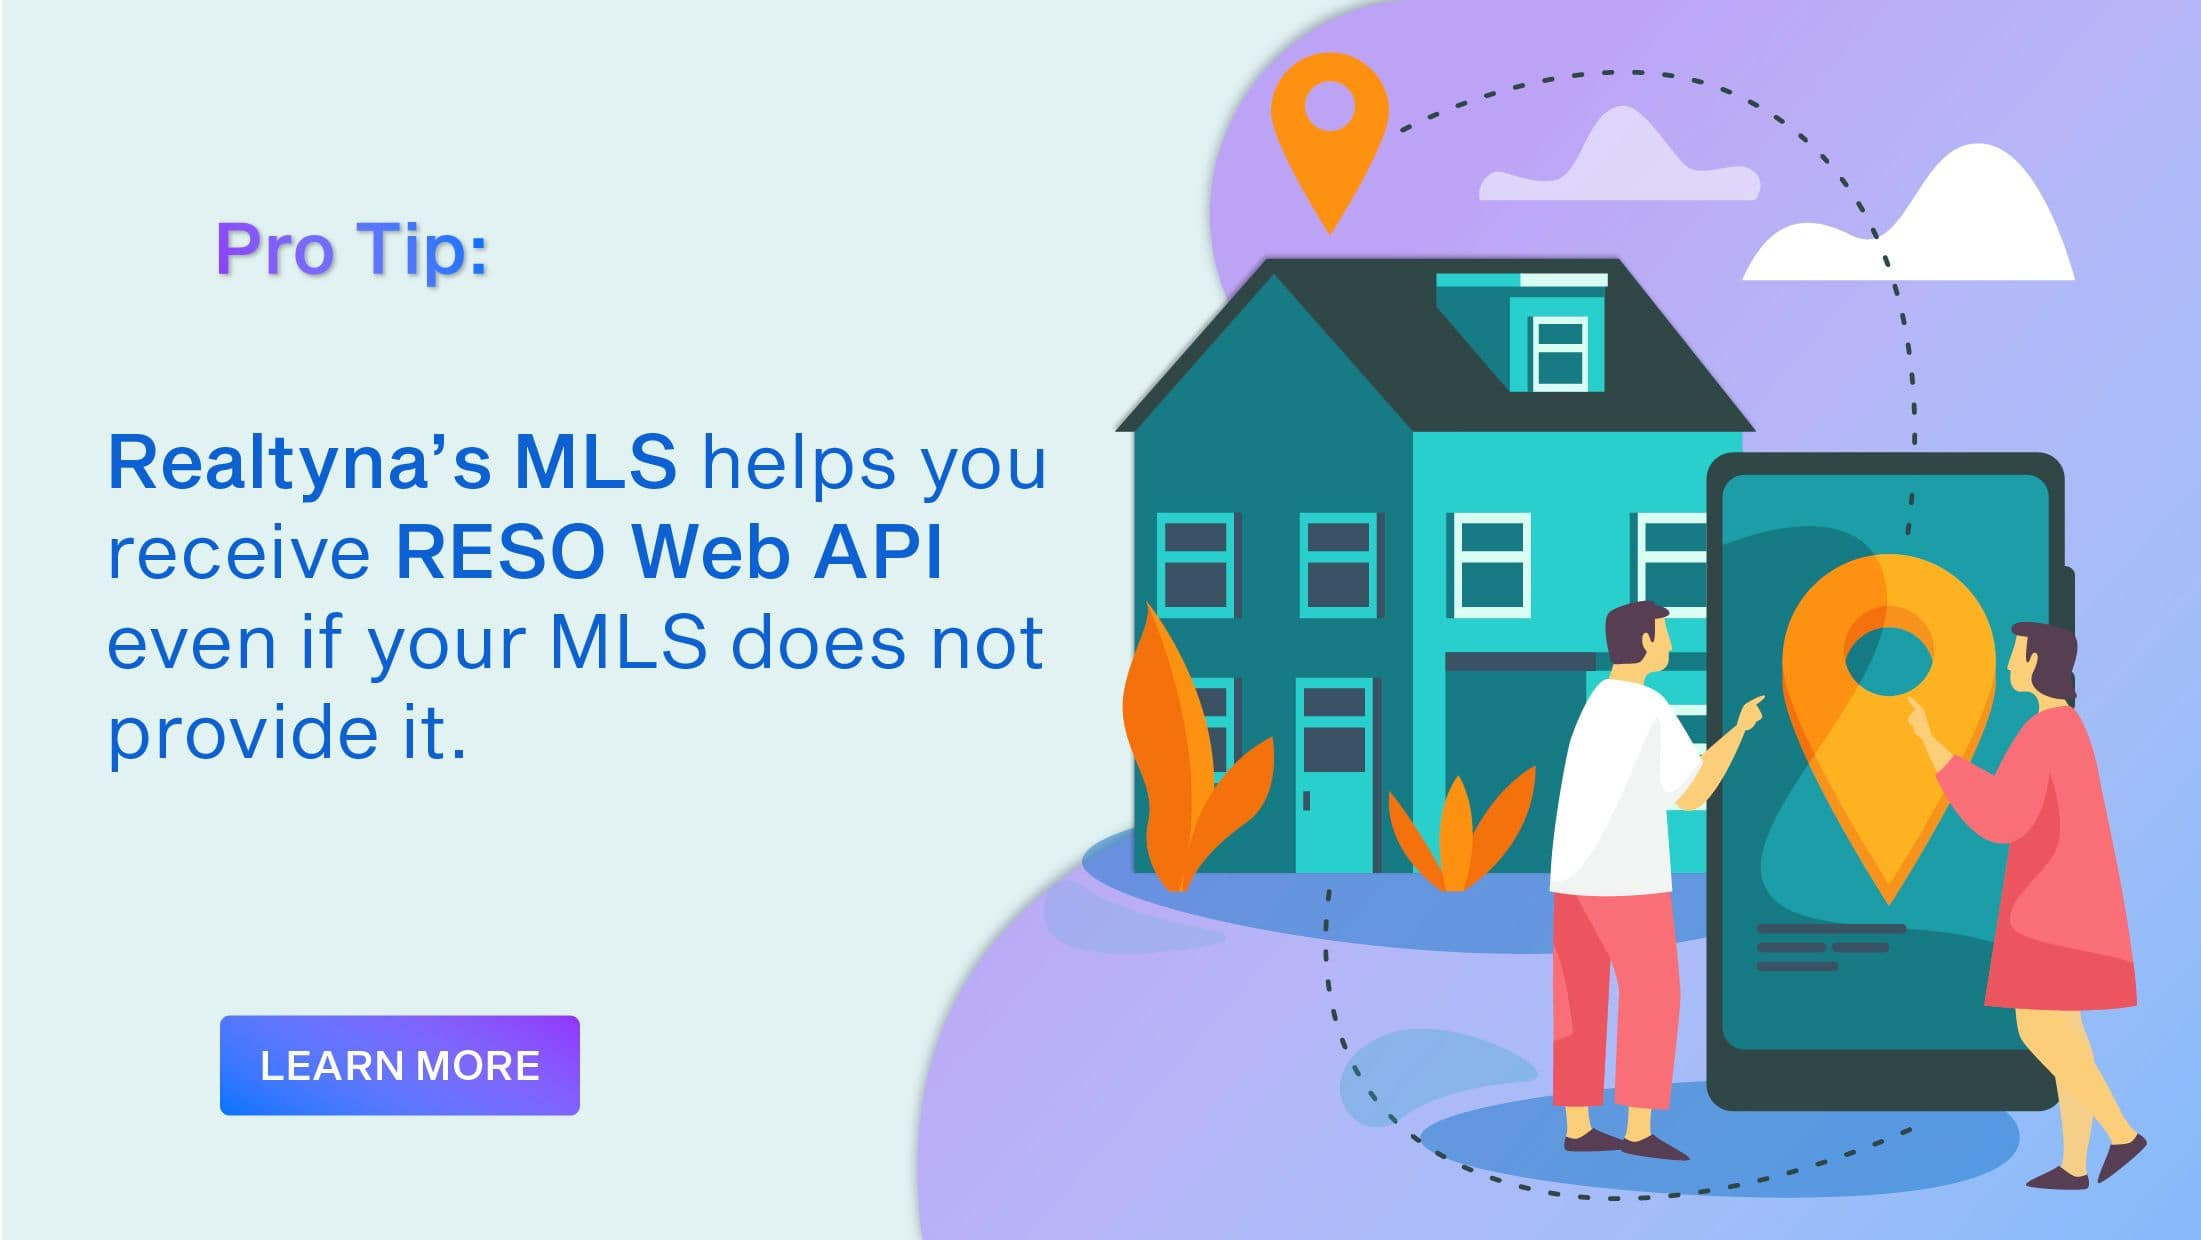 Realtyna's MLS